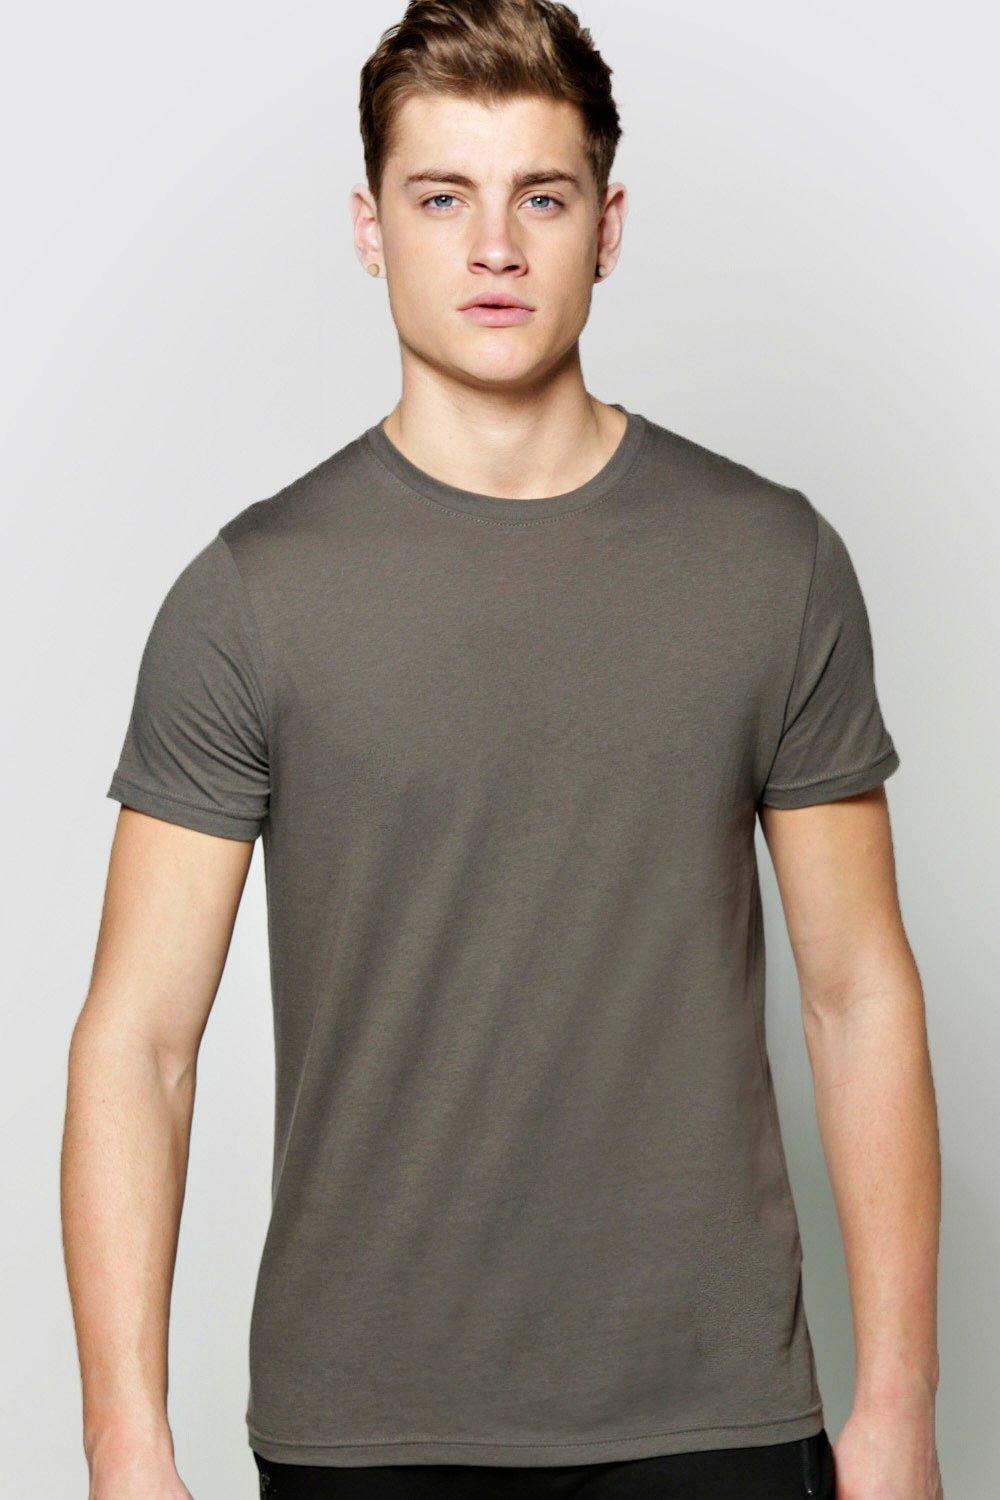 Choose a variety of long sleeve crew neck t shirts for men including waffle-knit, baseball and vintage styles. Make a fashionable statement everyday with the bright, casual designs of crew neck shirts for men from Old Navy. Shipping is on us! FREE on orders of $50 or more. FREE Returns on All Orders.